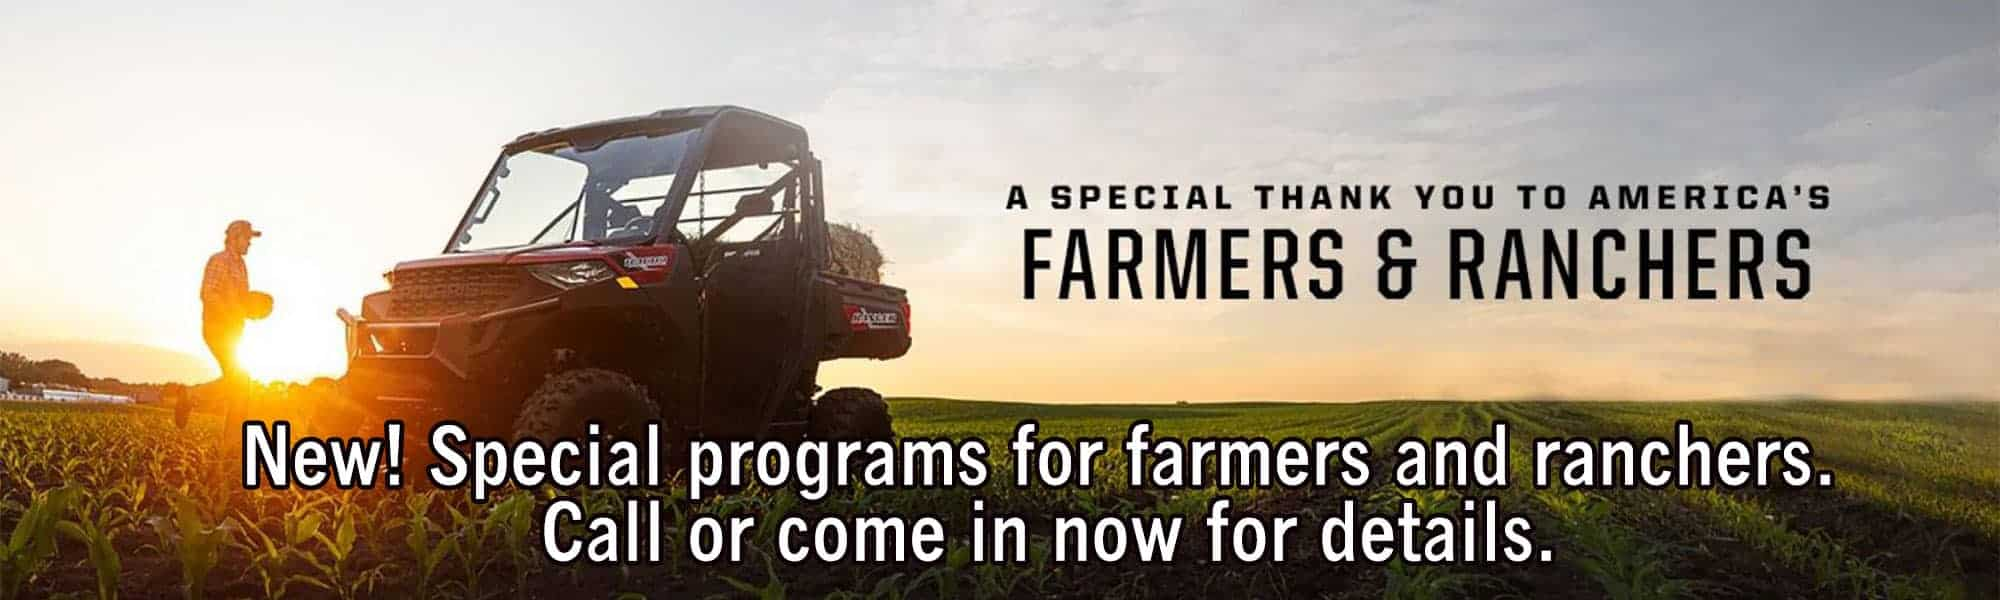 farmer-rancher-thank-you-ad